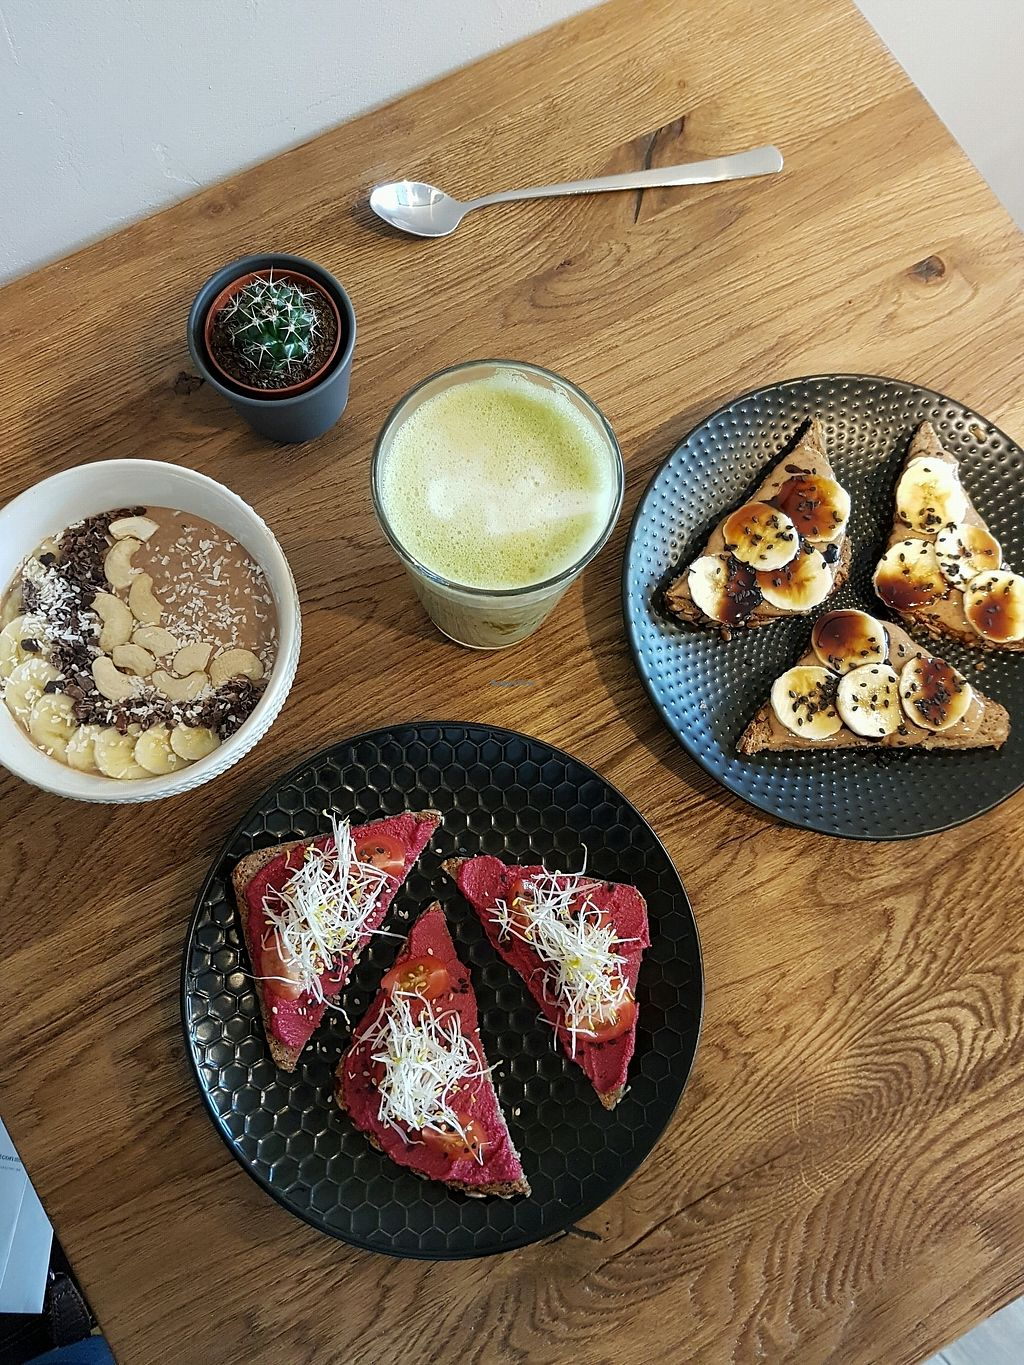 """Photo of Nährstoff-Reich  by <a href=""""/members/profile/AlinaH%C3%BCbi"""">AlinaHübi</a> <br/>overnight oats, peanut butter toast and beetroot hummus toast <br/> April 1, 2018  - <a href='/contact/abuse/image/115738/379258'>Report</a>"""